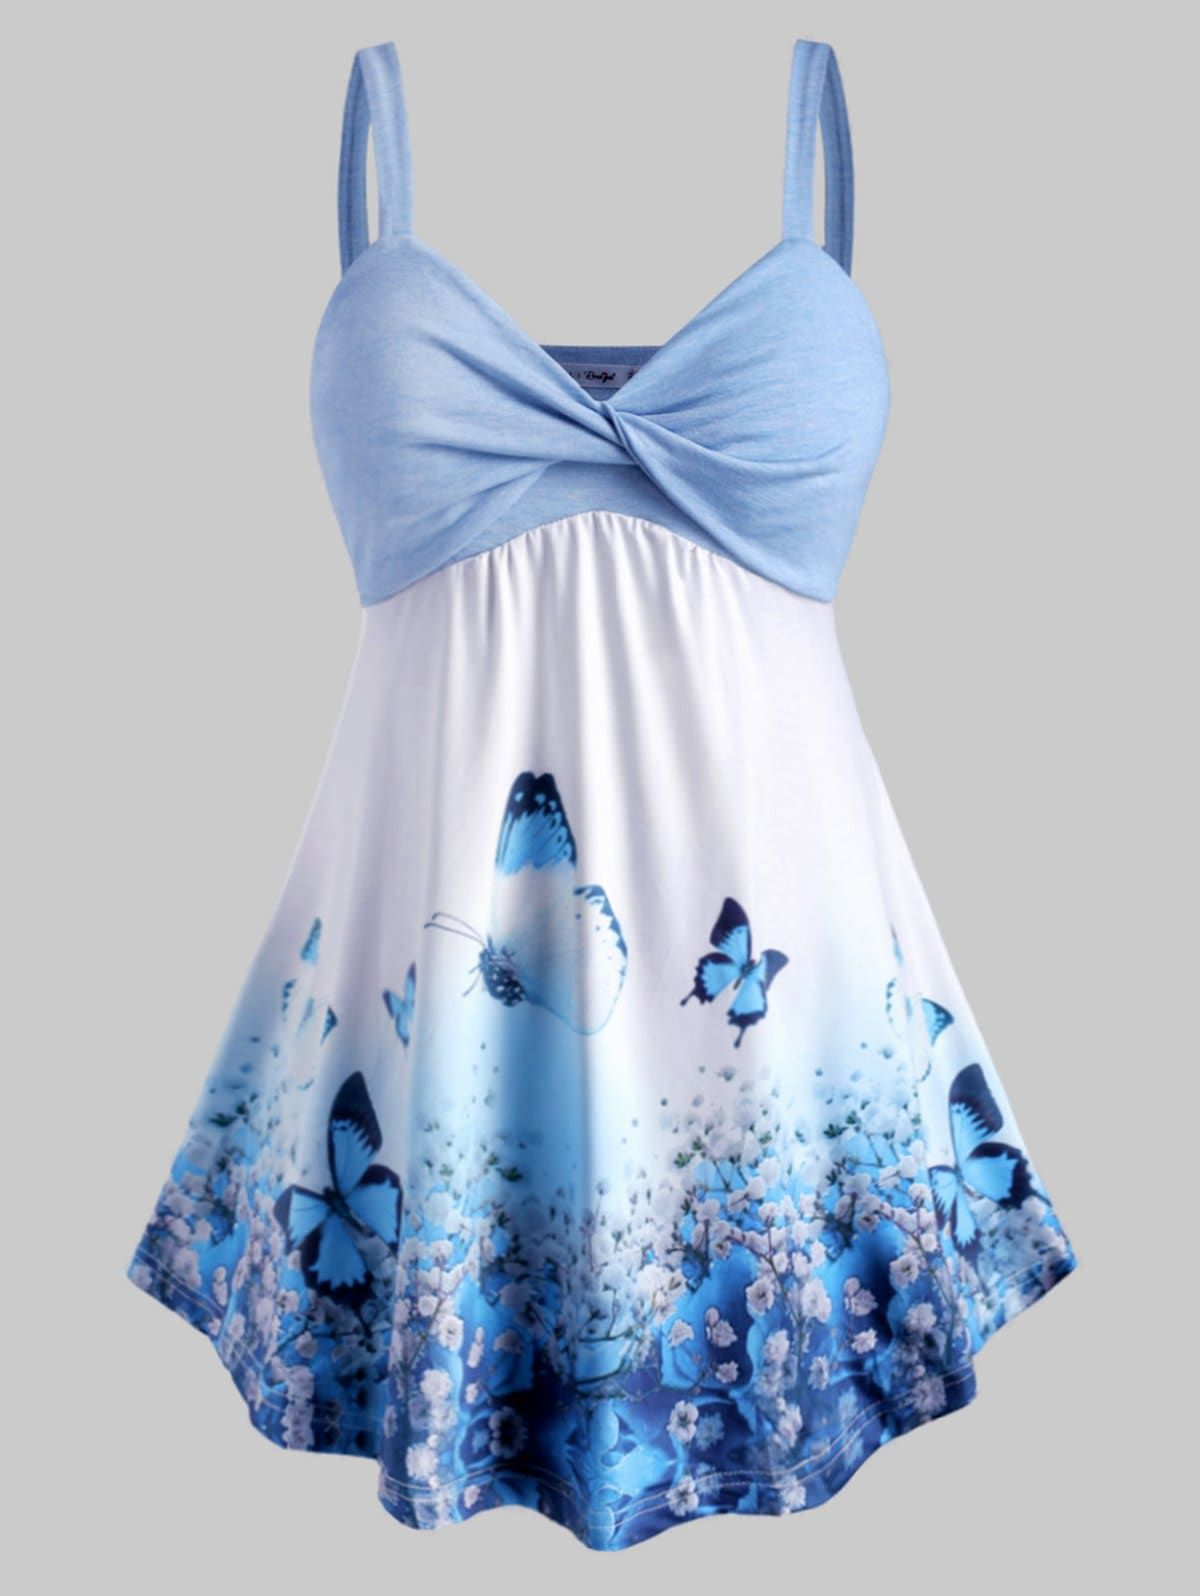 Plus Size Butterfly Print Front Twist Tank Top In 2020 Plus Size Tank Tops Summer Dresses For Women Summer Dress Outfits [ 1596 x 1200 Pixel ]